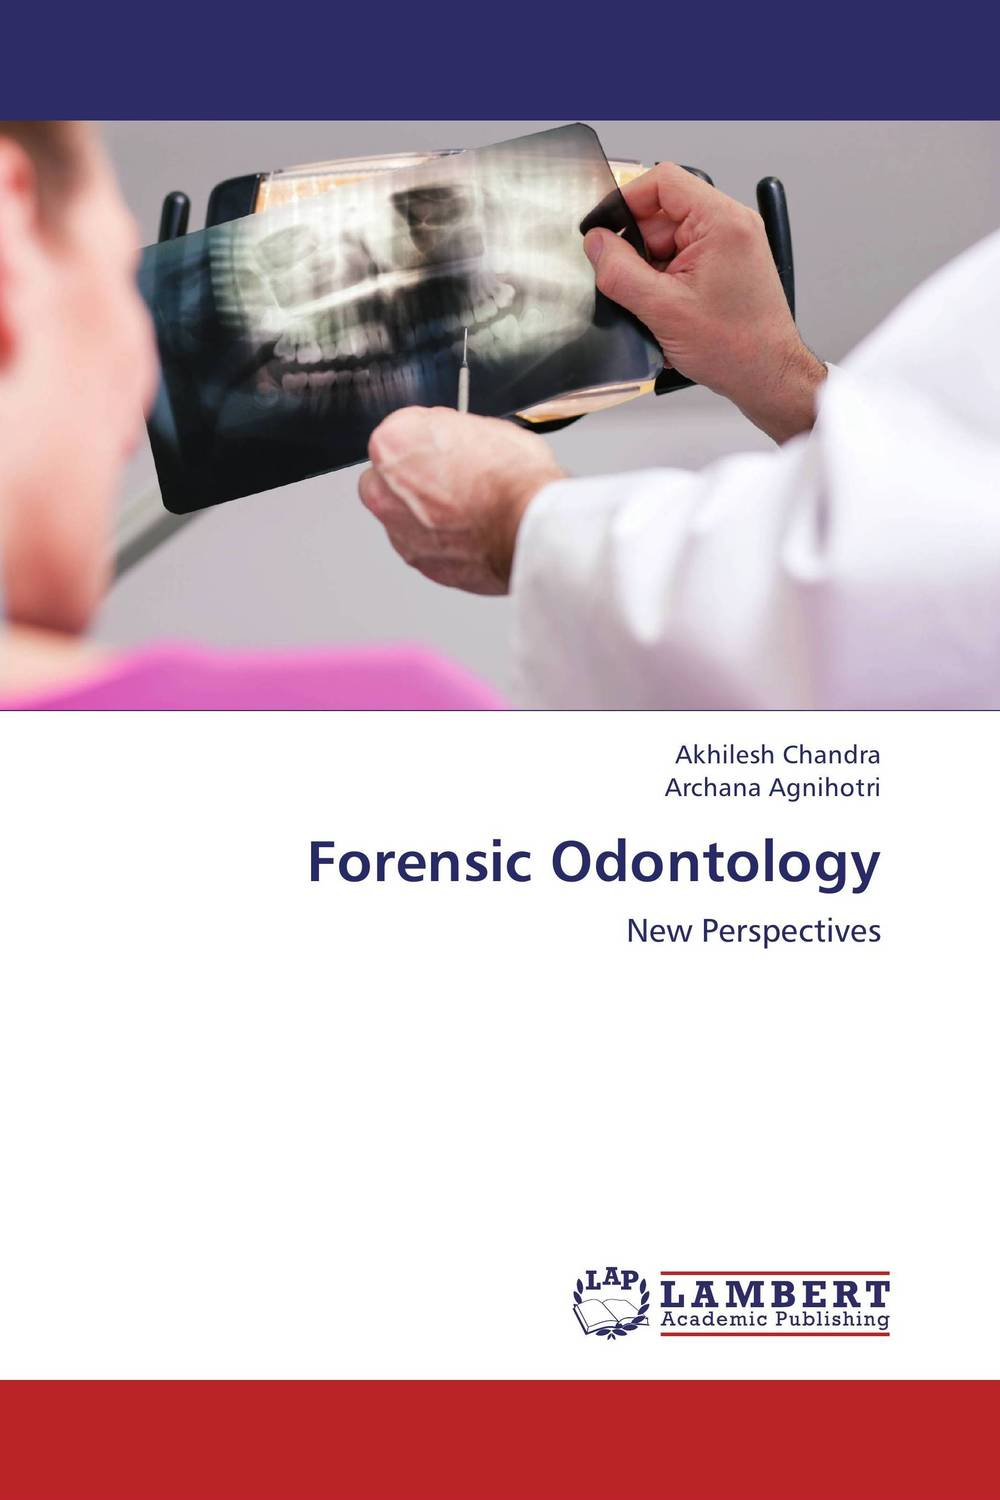 Forensic Odontology karanprakash singh ramanpreet kaur bhullar and sumit kochhar forensic dentistry teeth and their secrets